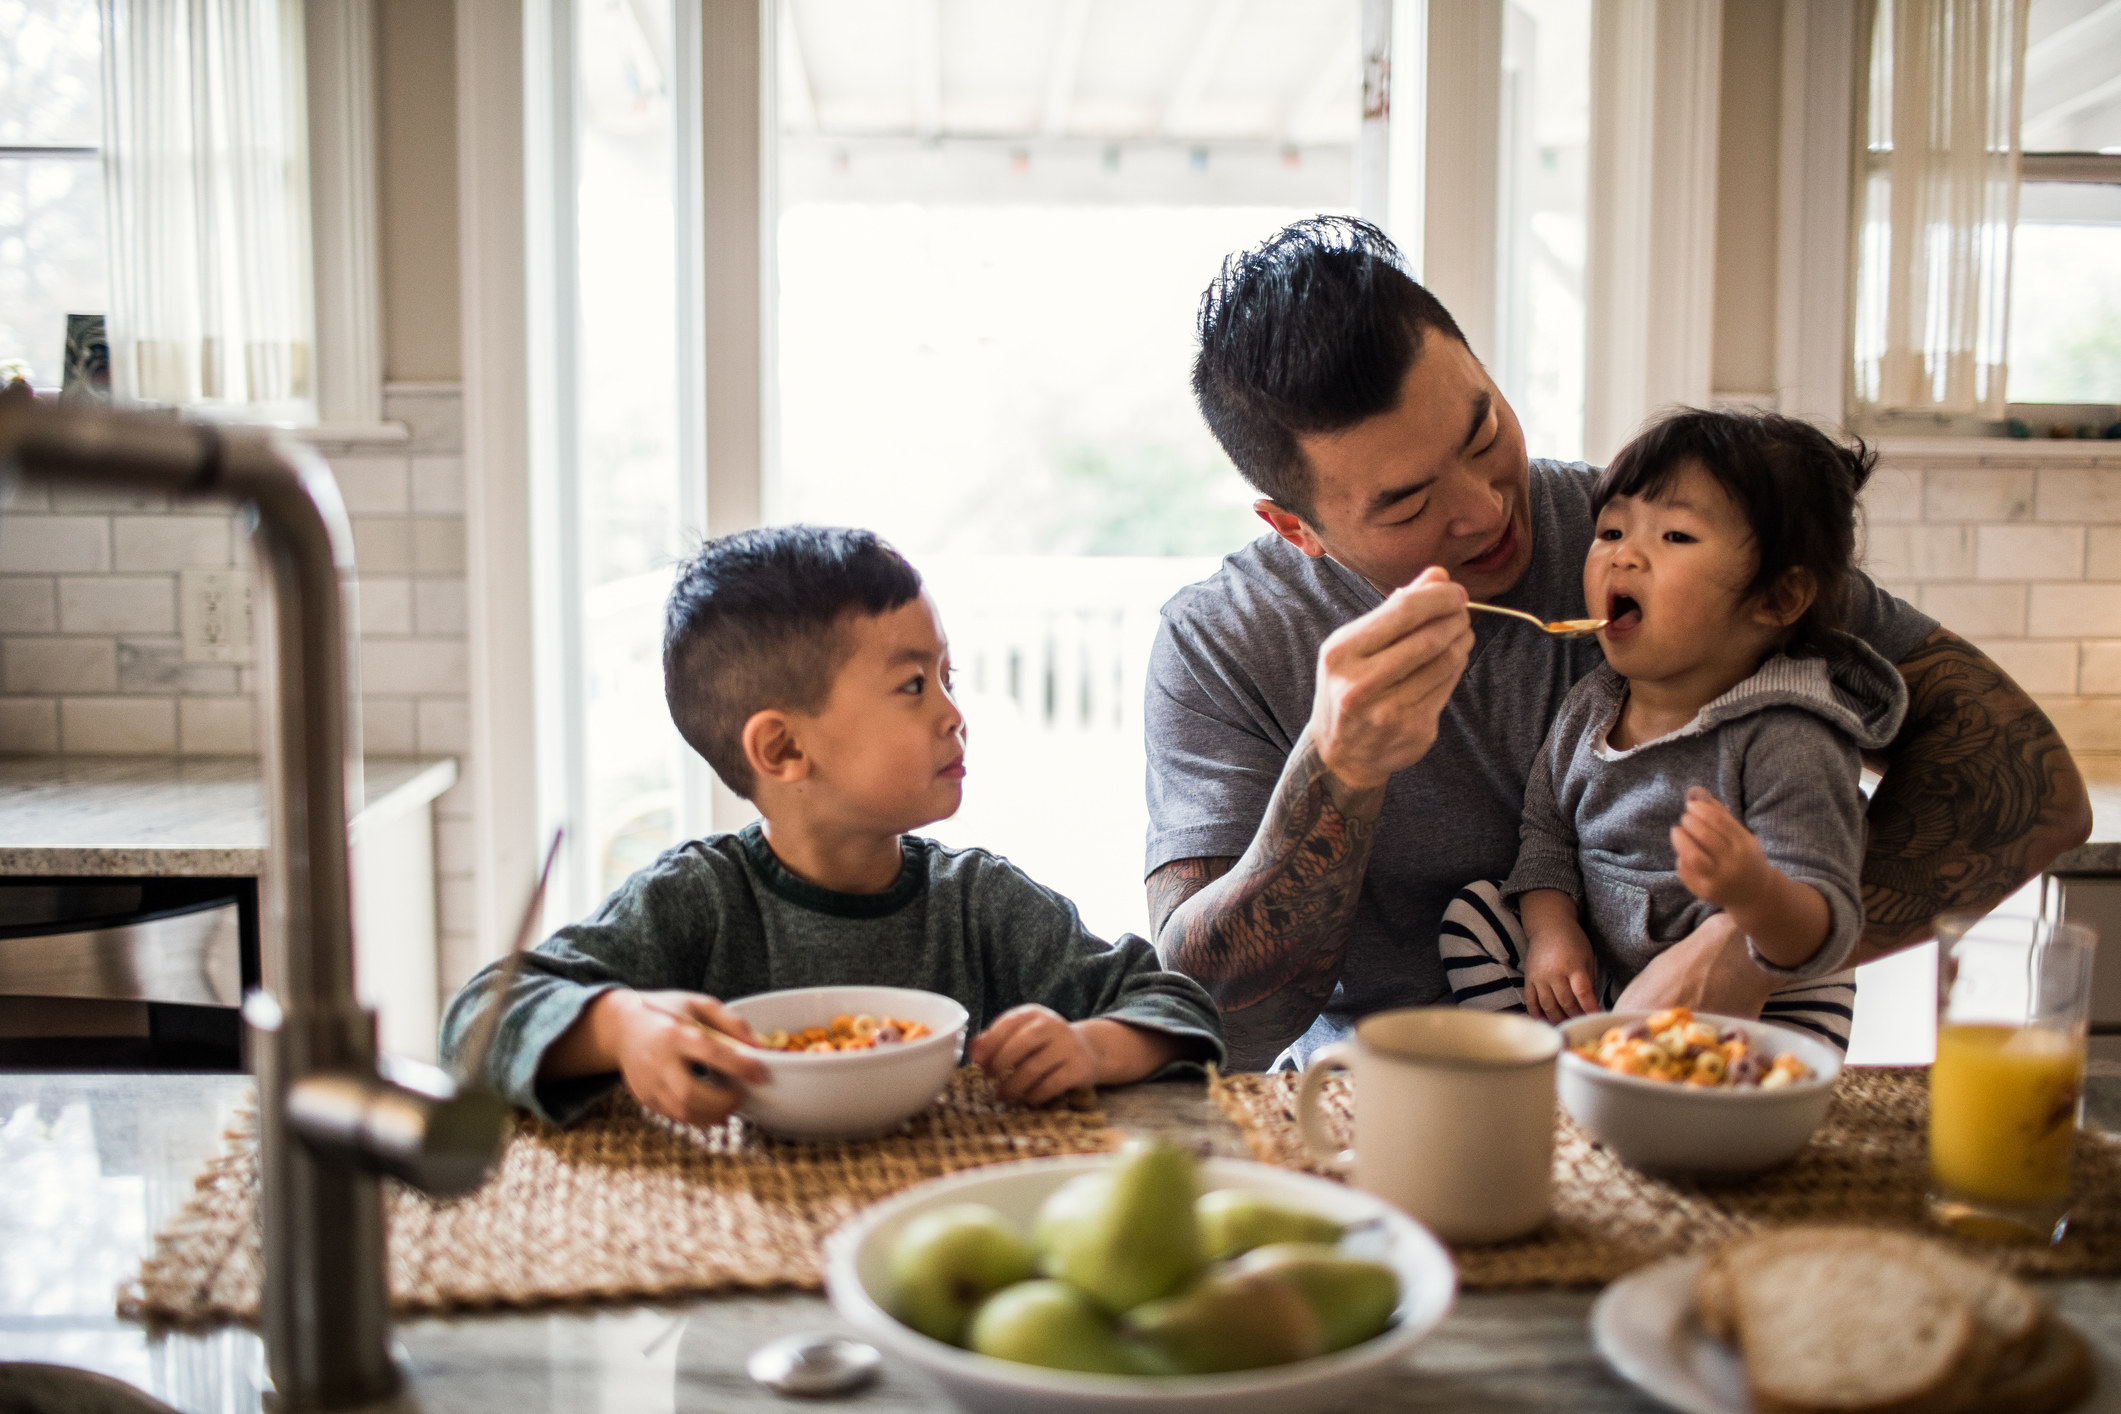 Stay-at-home dad eating breakfast with two kids